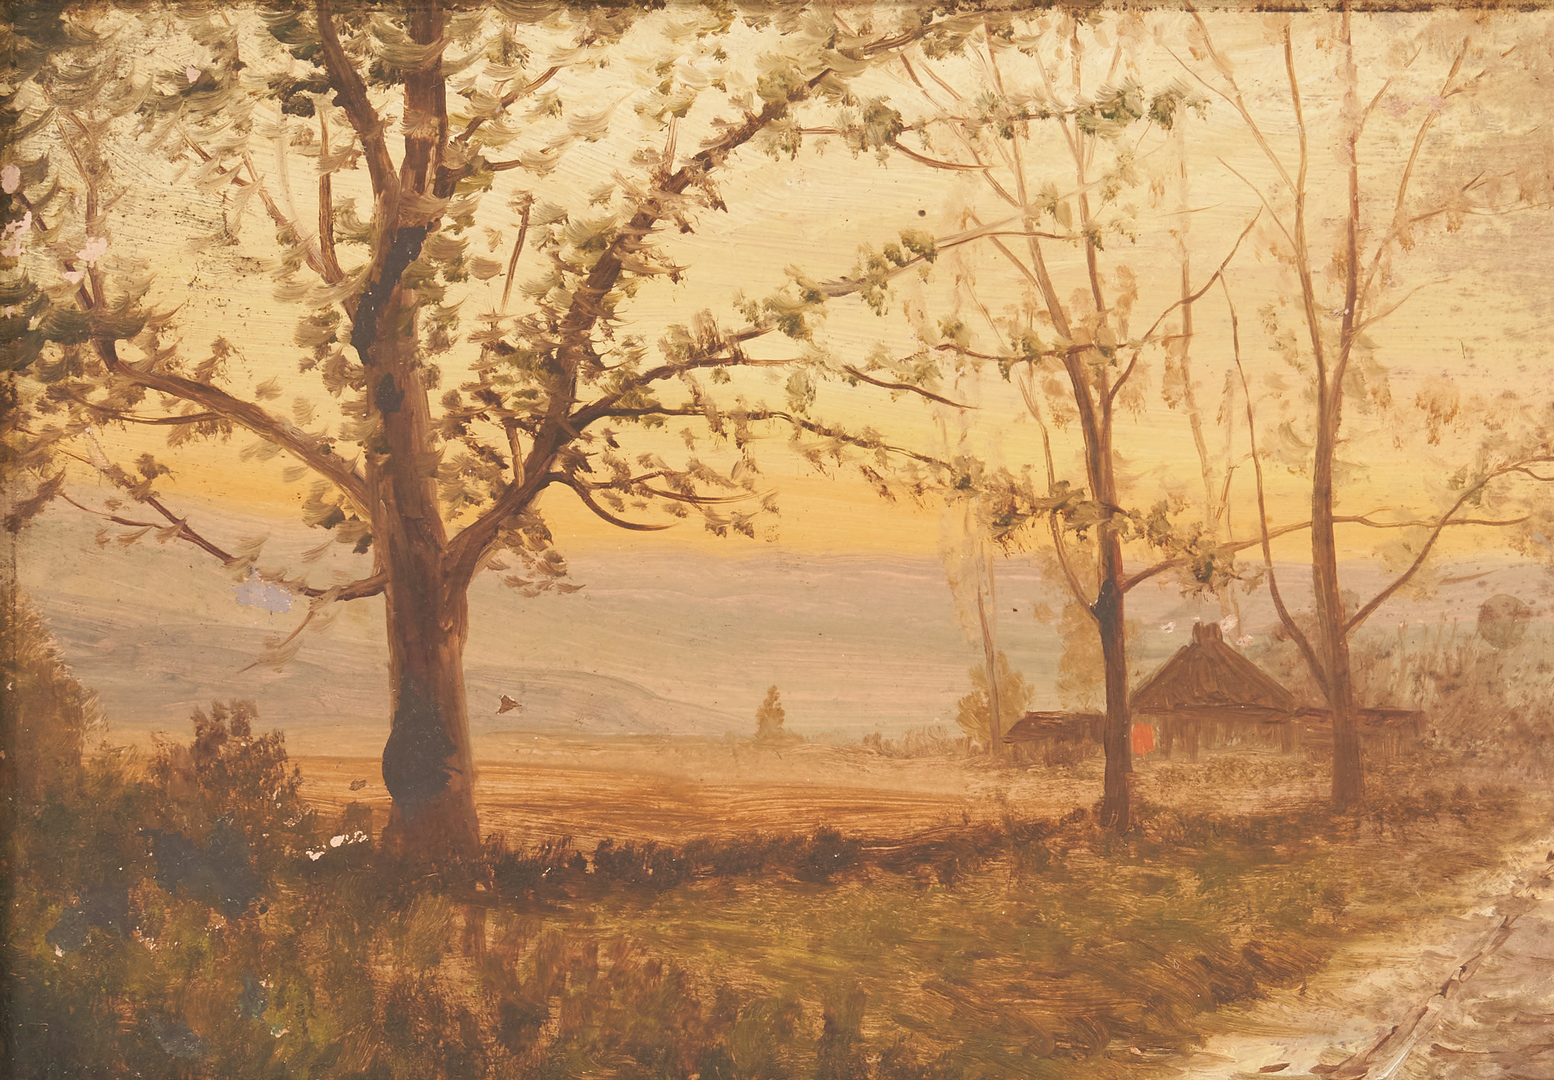 Lot 991: 2 Washington Girard landscape paintings, Country Road and Lake with Boats